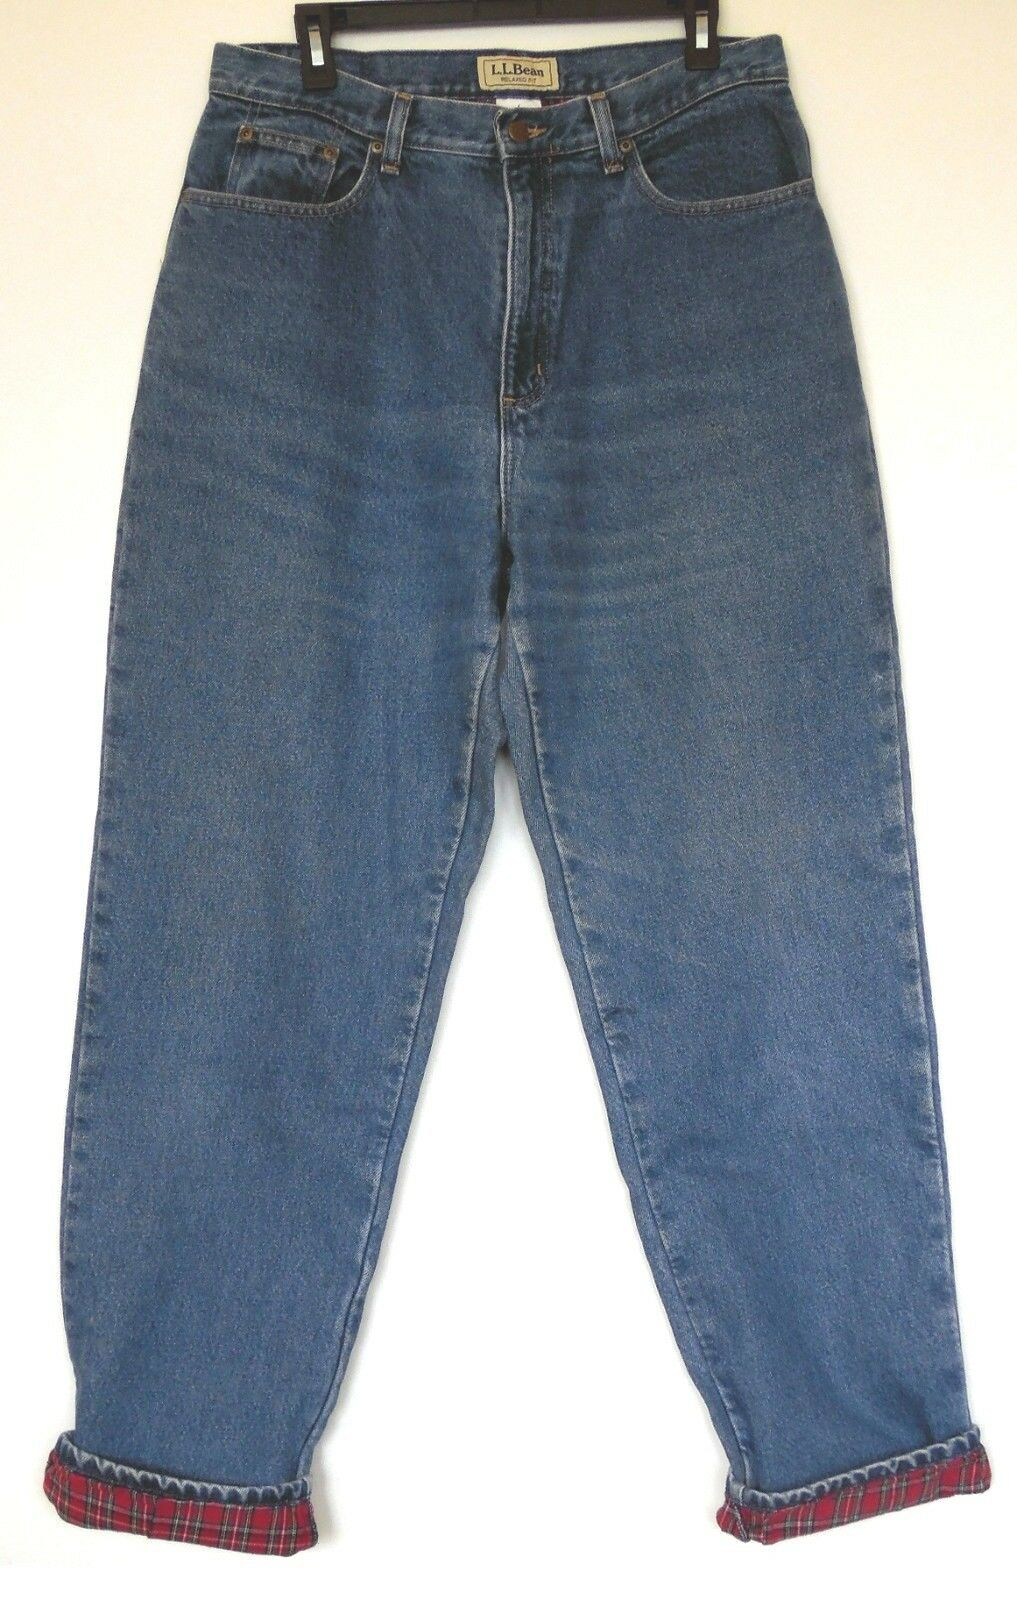 L.L. Bean Relaxed Fit Denim Medium bluee Jeans Lined with Red Plaid Flannel 14 MT